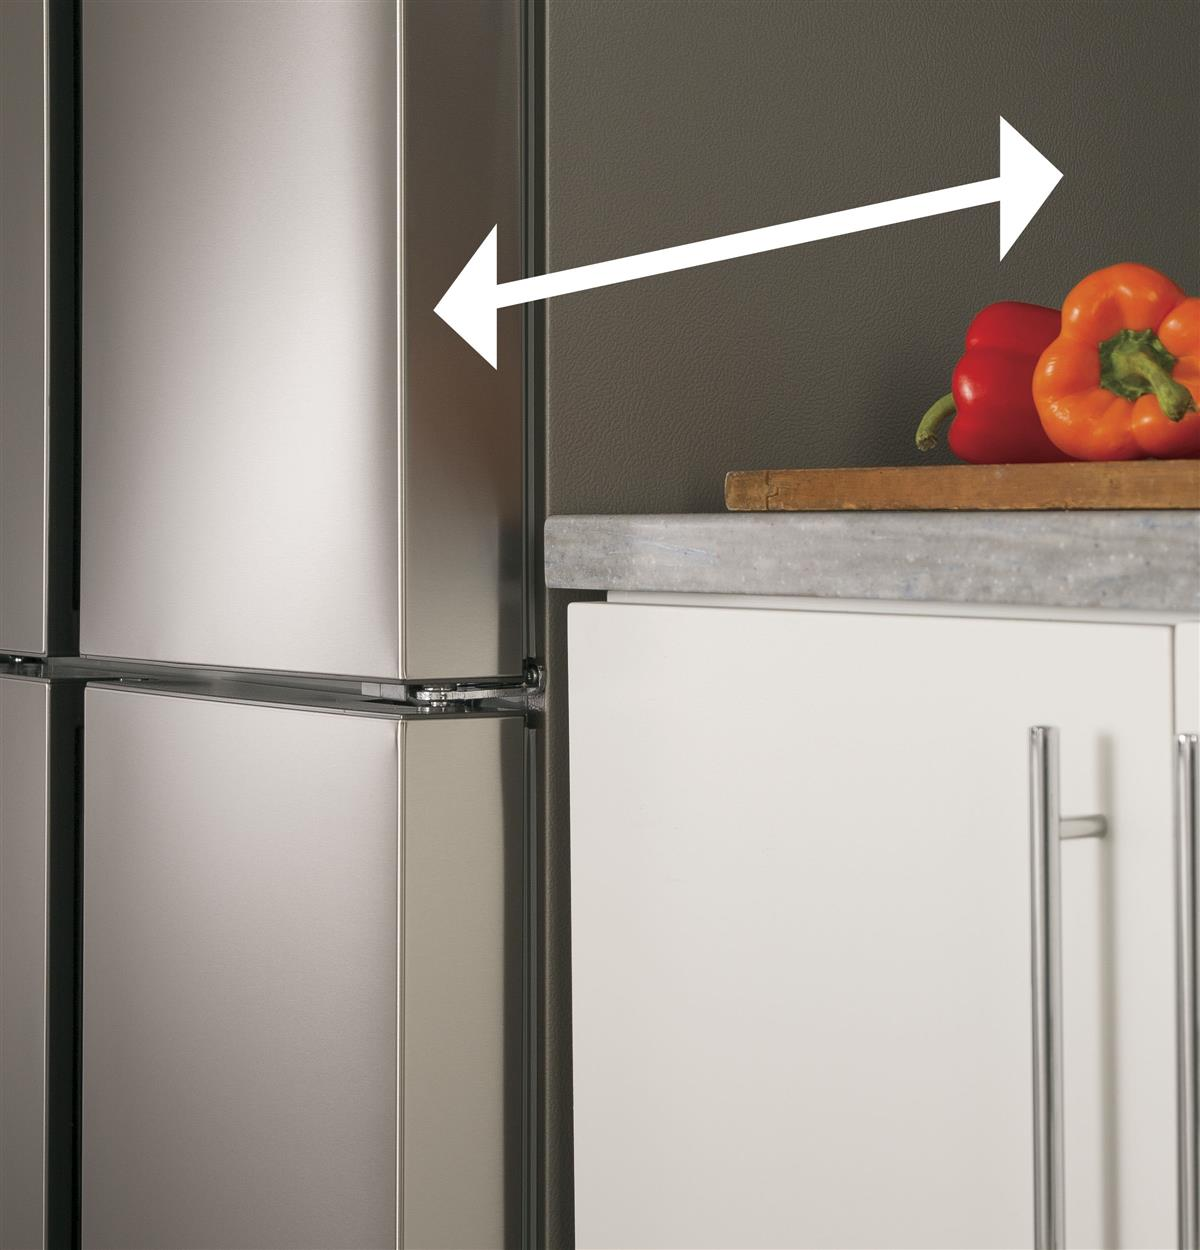 Stainless Bottom-Freezer HRQ16N3BGS Feature Photos